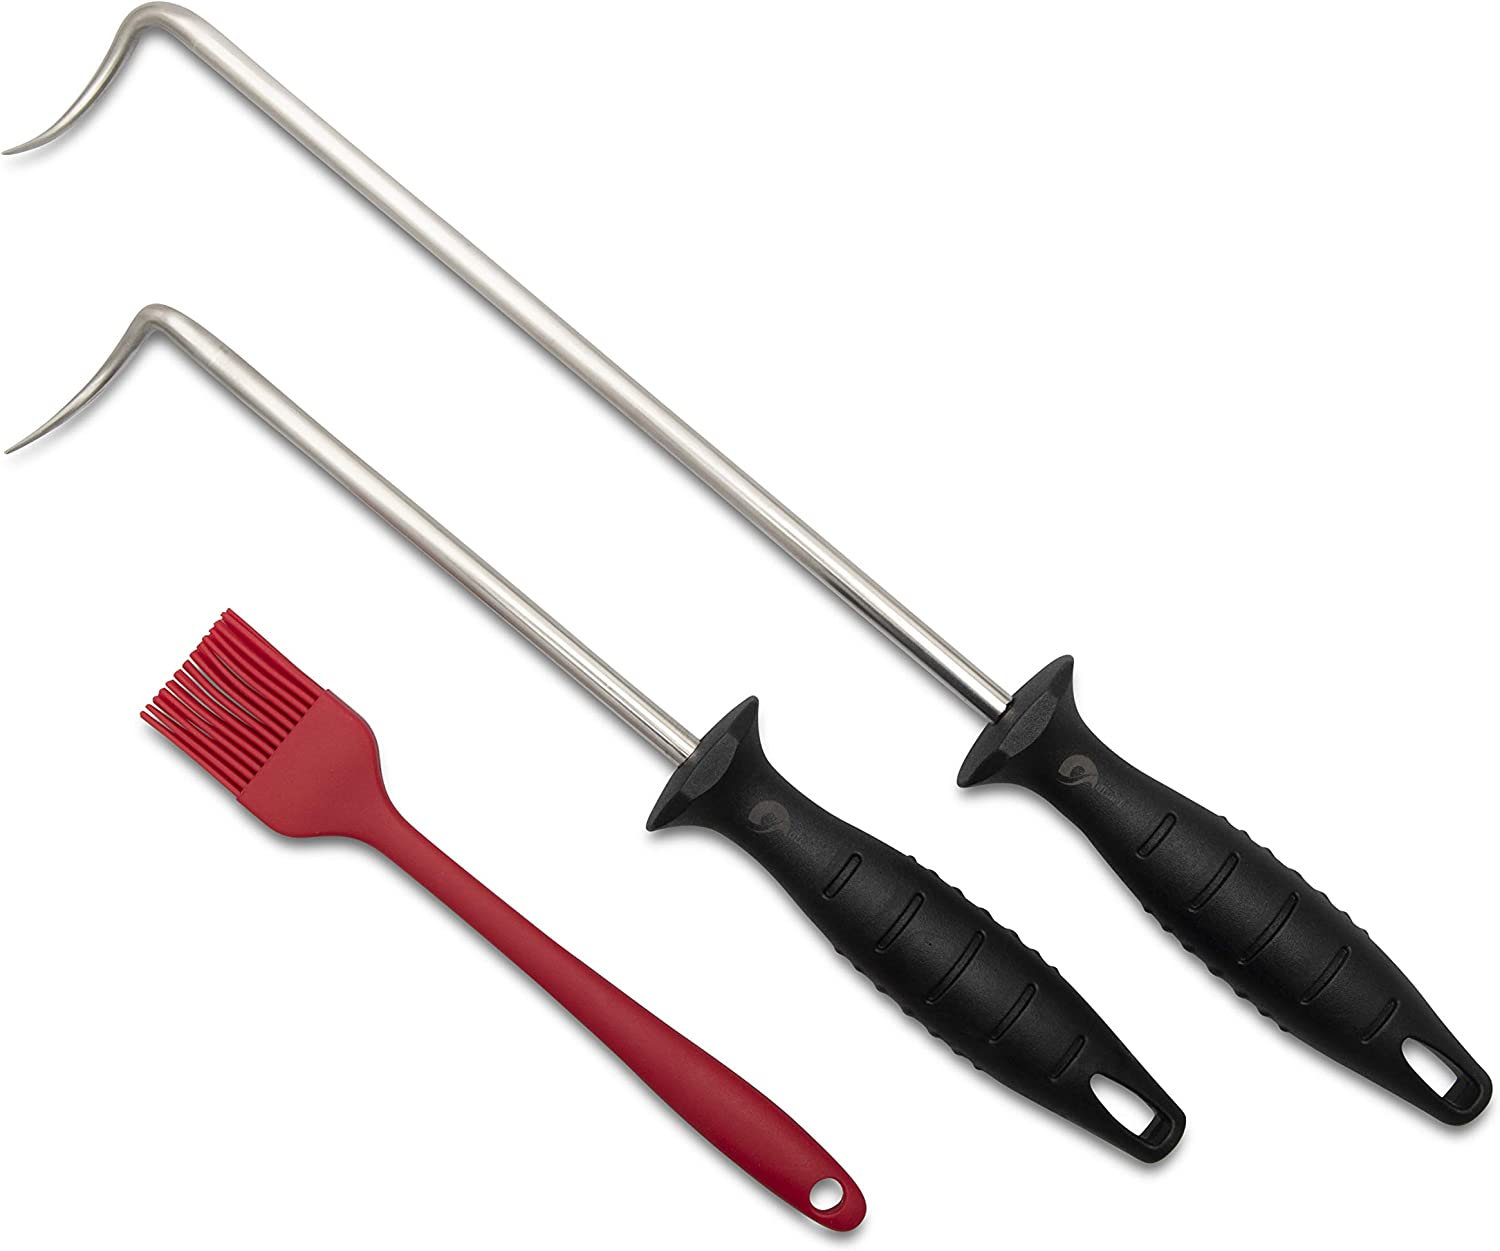 """dBack 2 Pigtail Food Flipper Set - 16"""" and 12.2"""" Stainless Steel Hooks Ideal Kitchen Tool for Cooking, BBQ, Grilling, Flipping, Turning Meat, Vegetables - Complete with Silicone Basting Brush"""